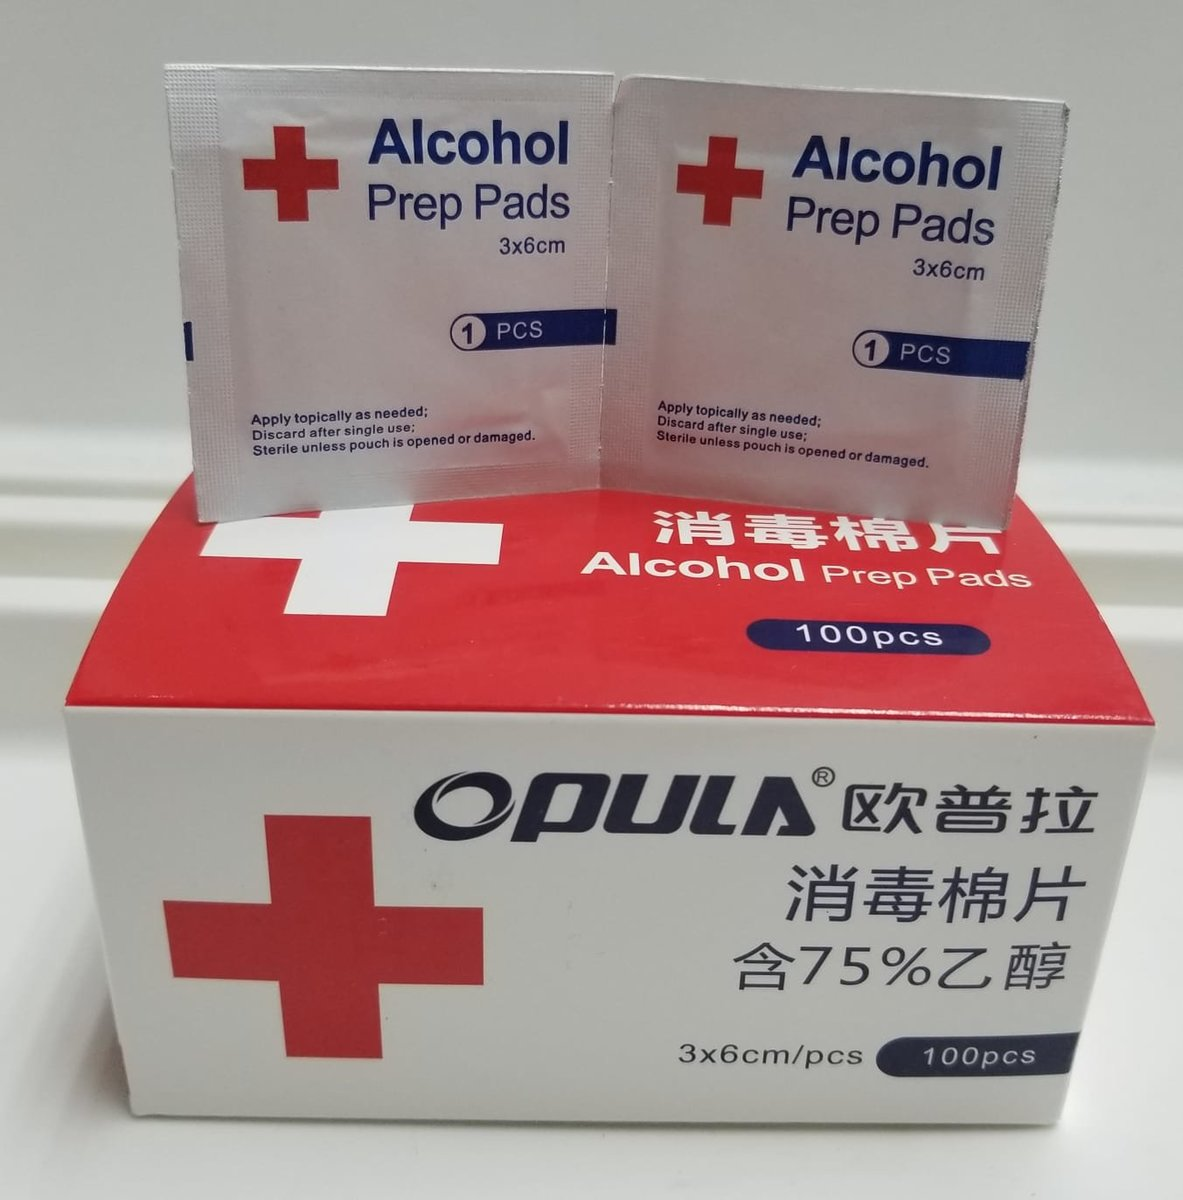 Sterile Alcohol Prep Pads (75% Ethyl Alcohol) (100pcs) x 1 Box